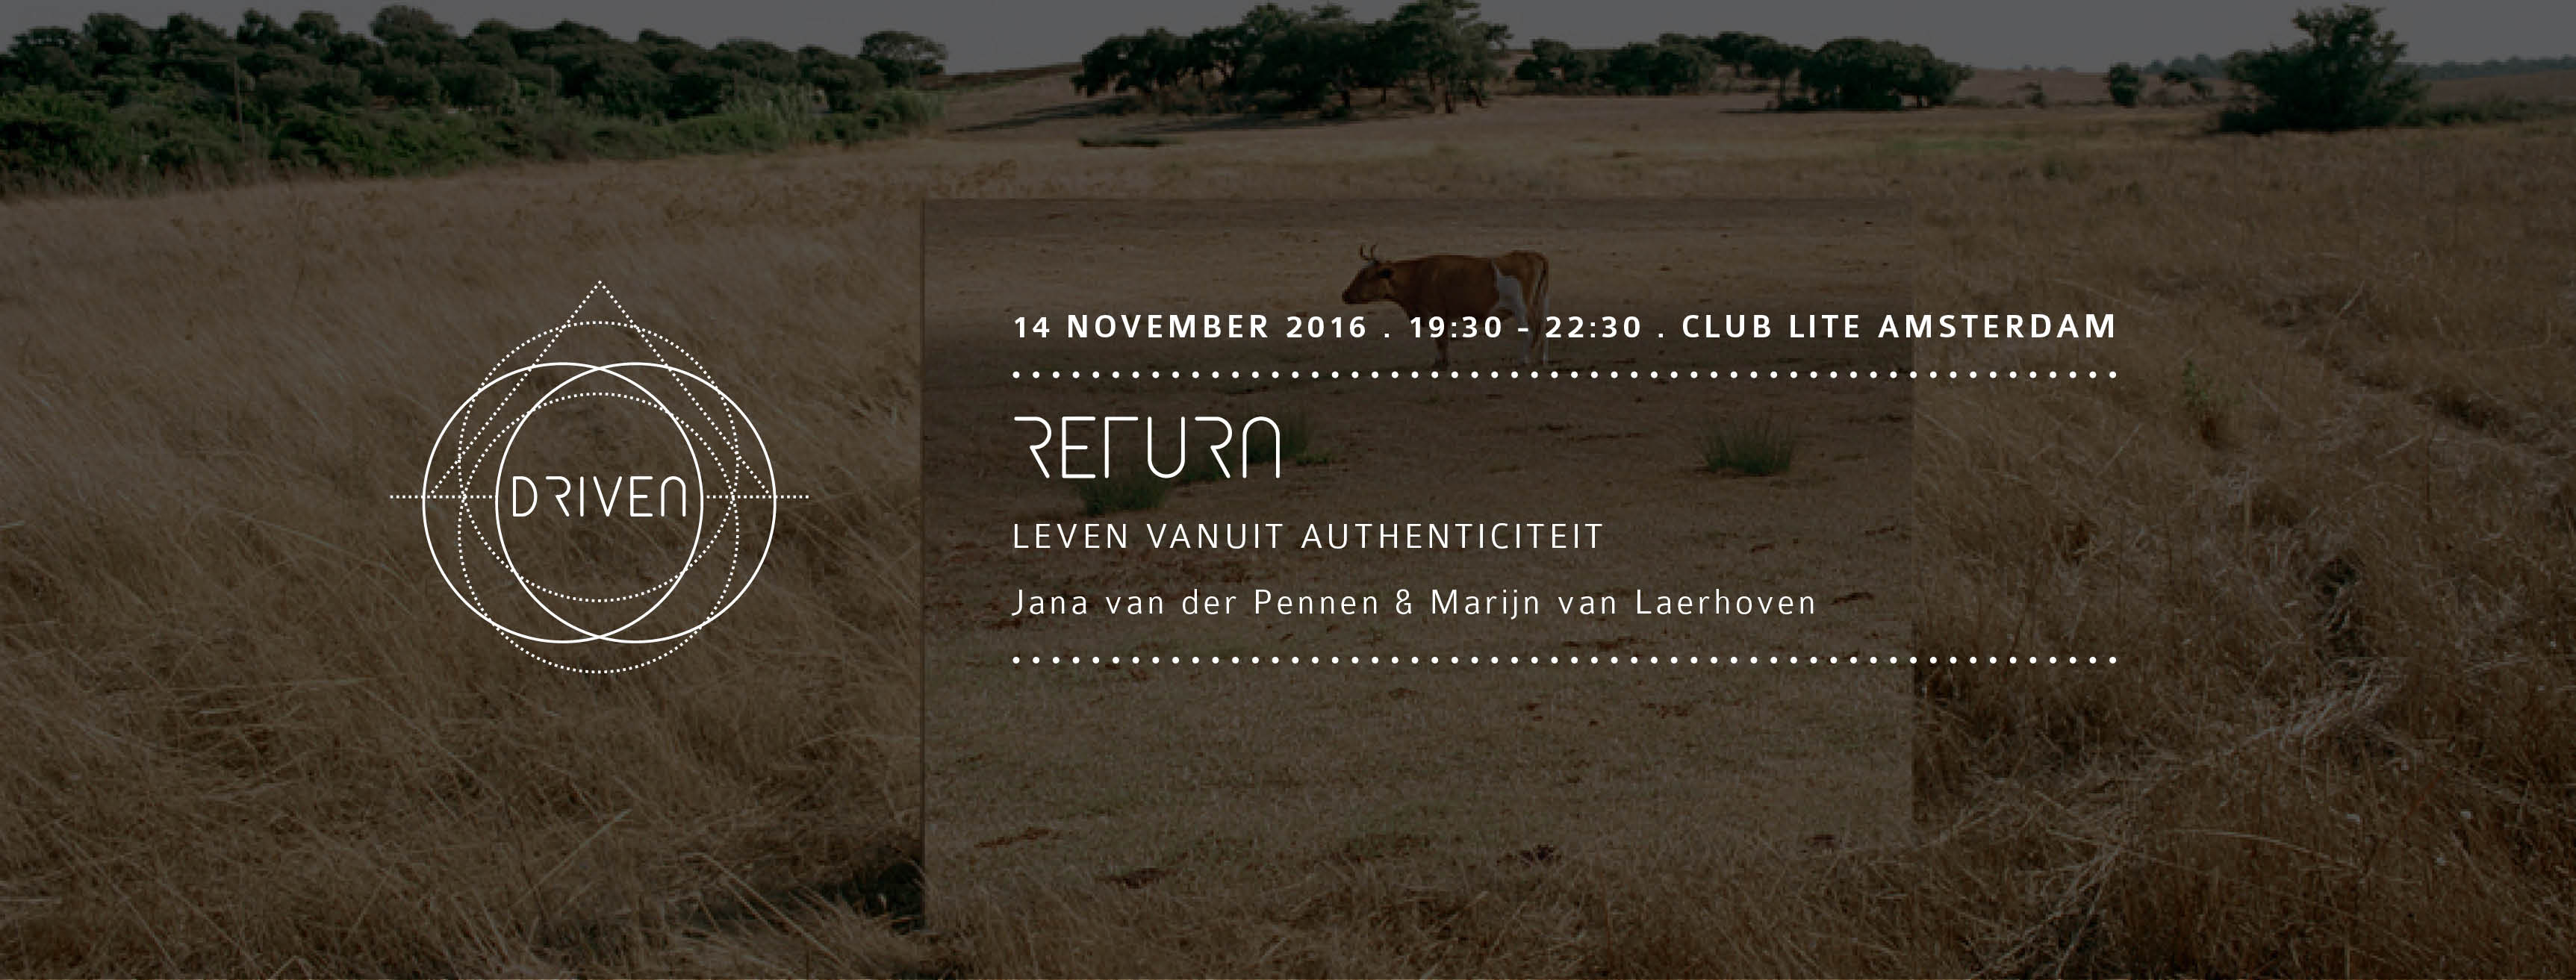 Driven: Return - met Jana & Marijn